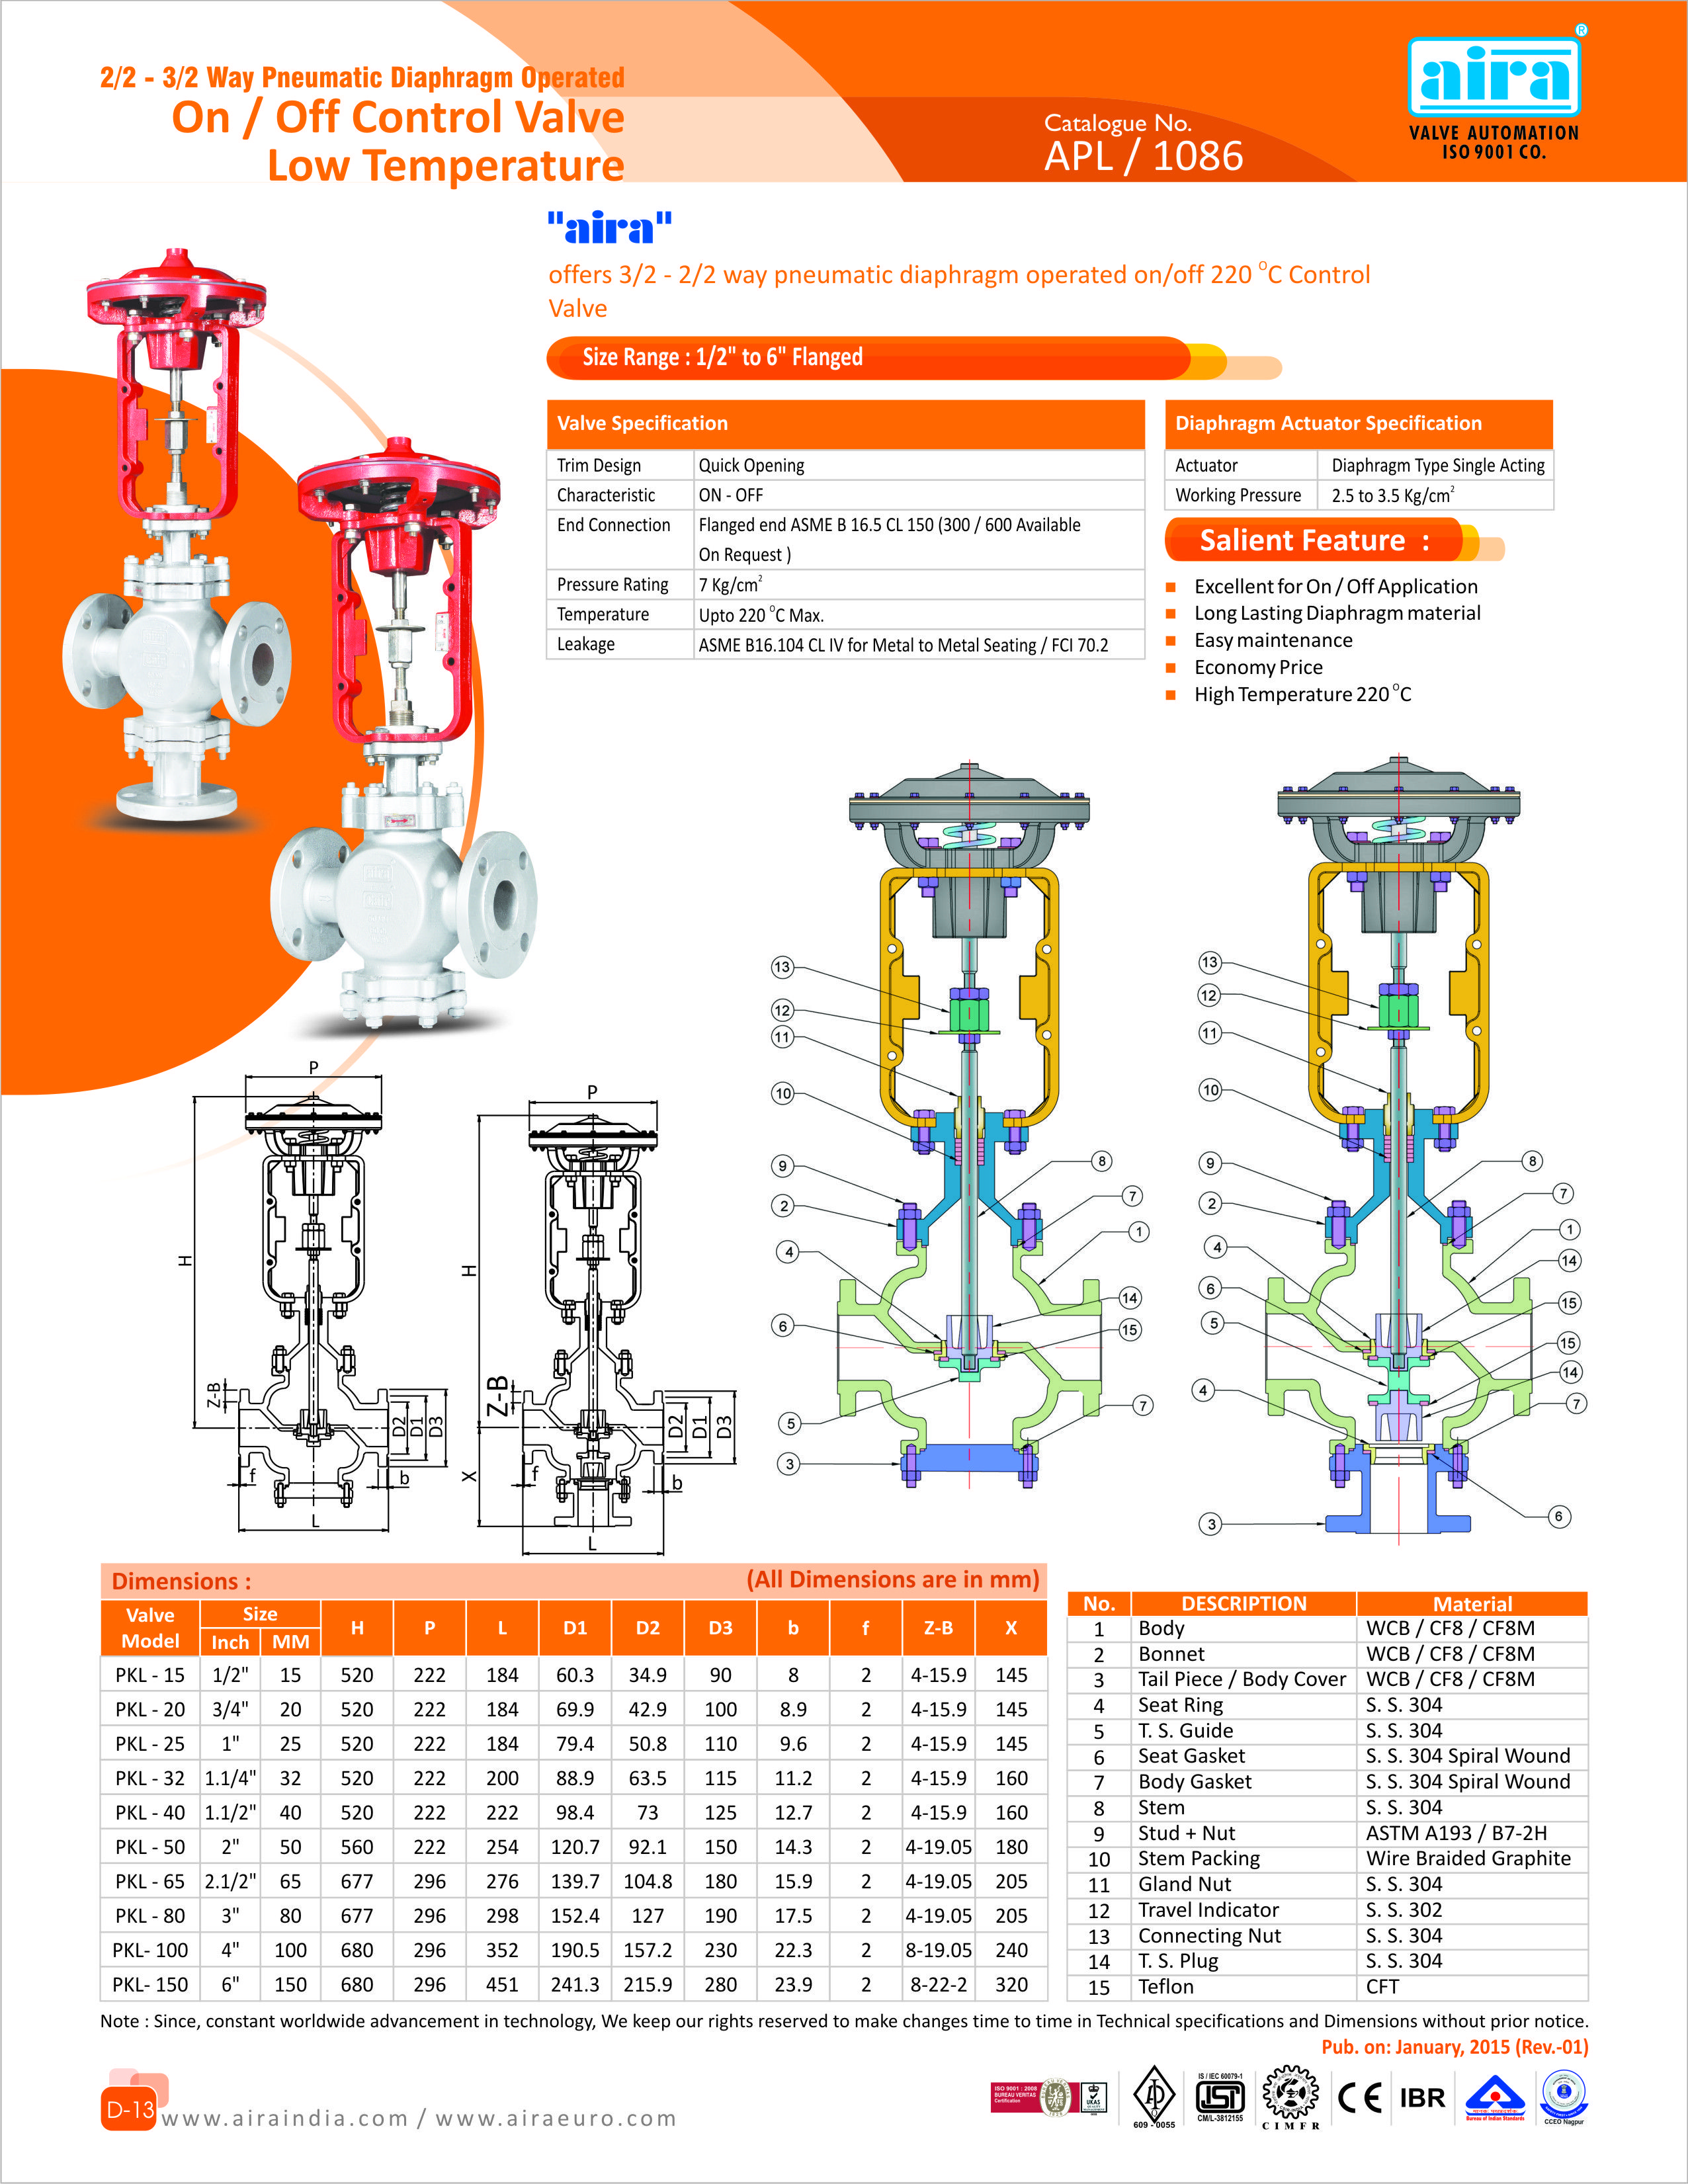 hight resolution of 2 2 3 2 way pneumatic diaphragm operated on off control valve low temperature for more info visit now www airaindia com